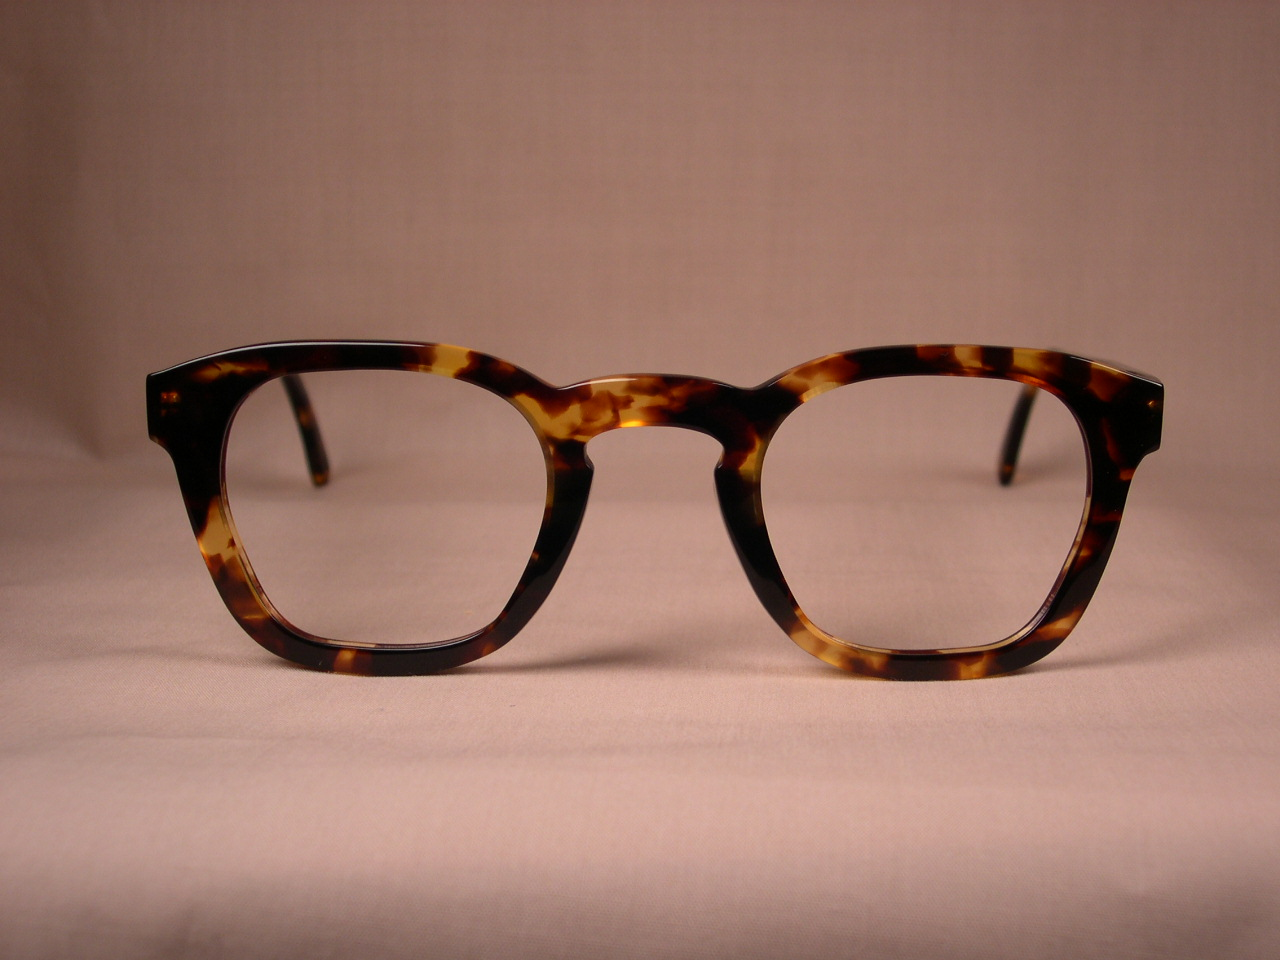 Indivijual-Custom-Glasses-41.jpg